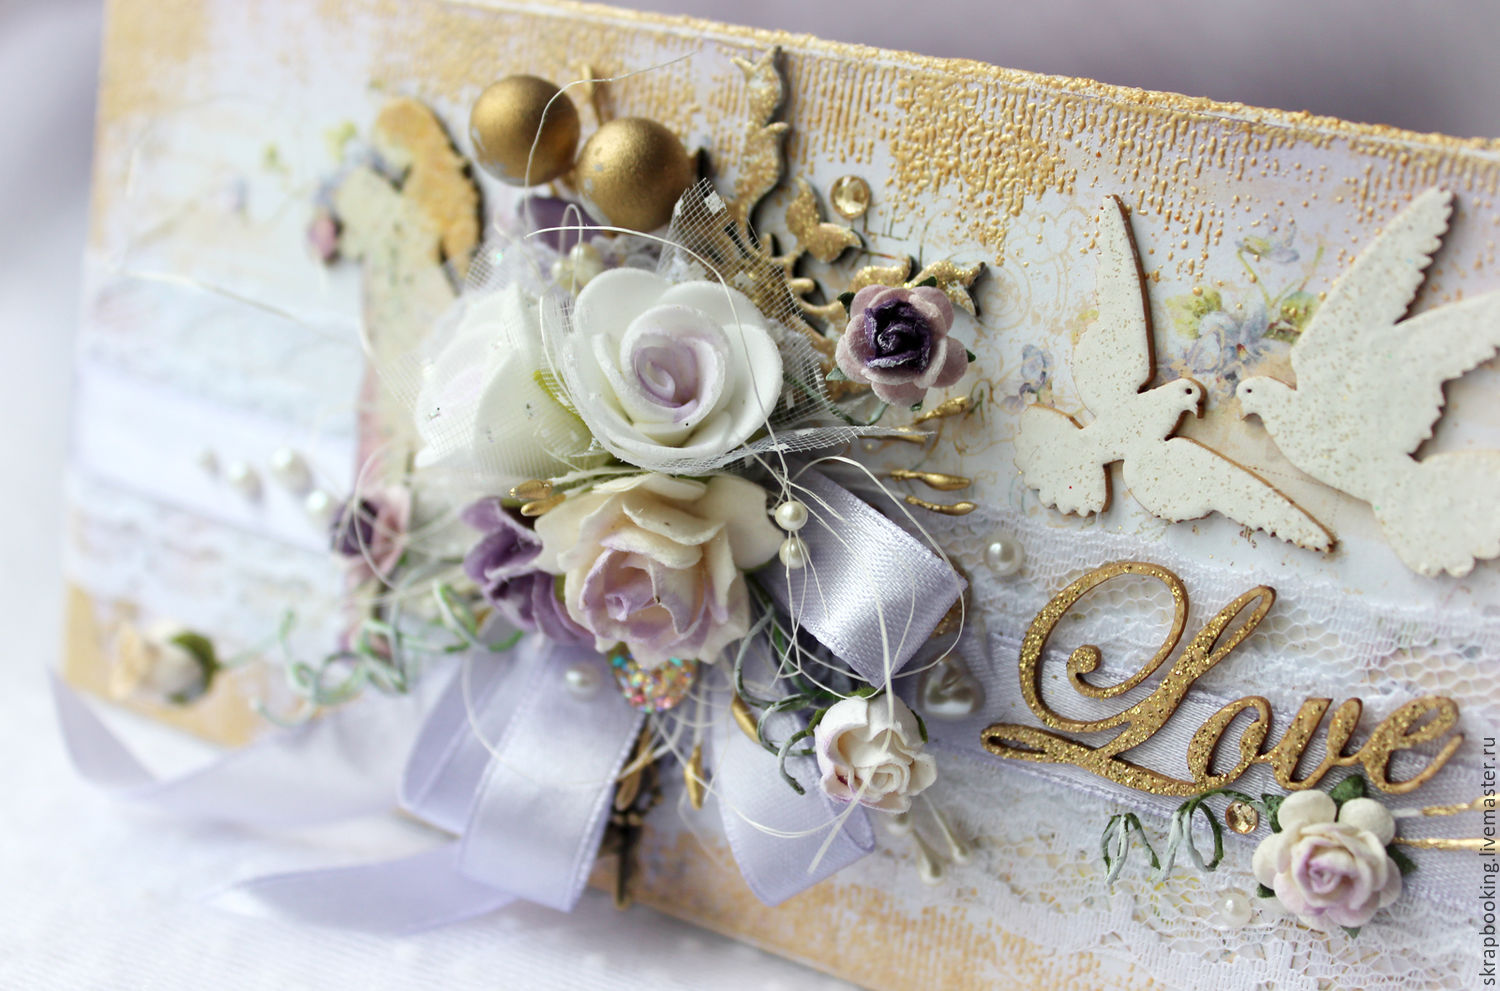 Wedding Gift Online: Wedding Envelope For Money Gift